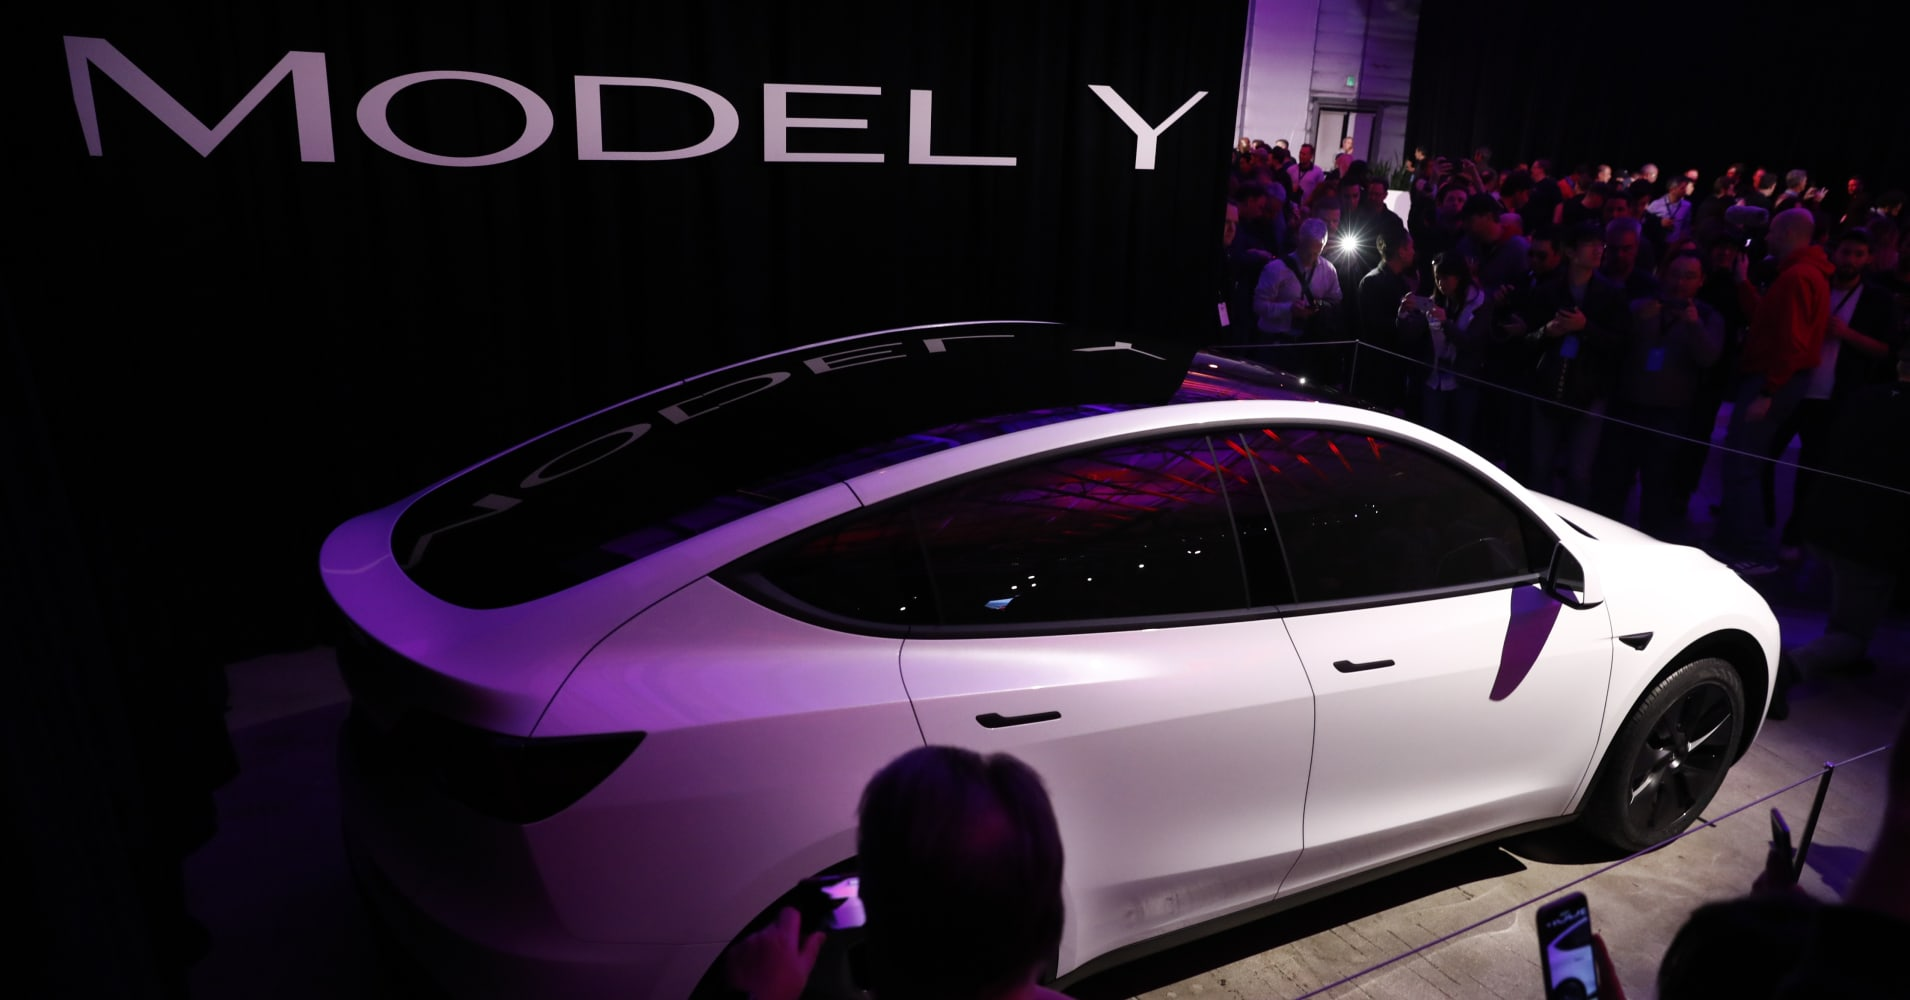 Here's what Wall Street analysts are saying about Tesla's Model Y: 'Underwhelming', 'no surprises'